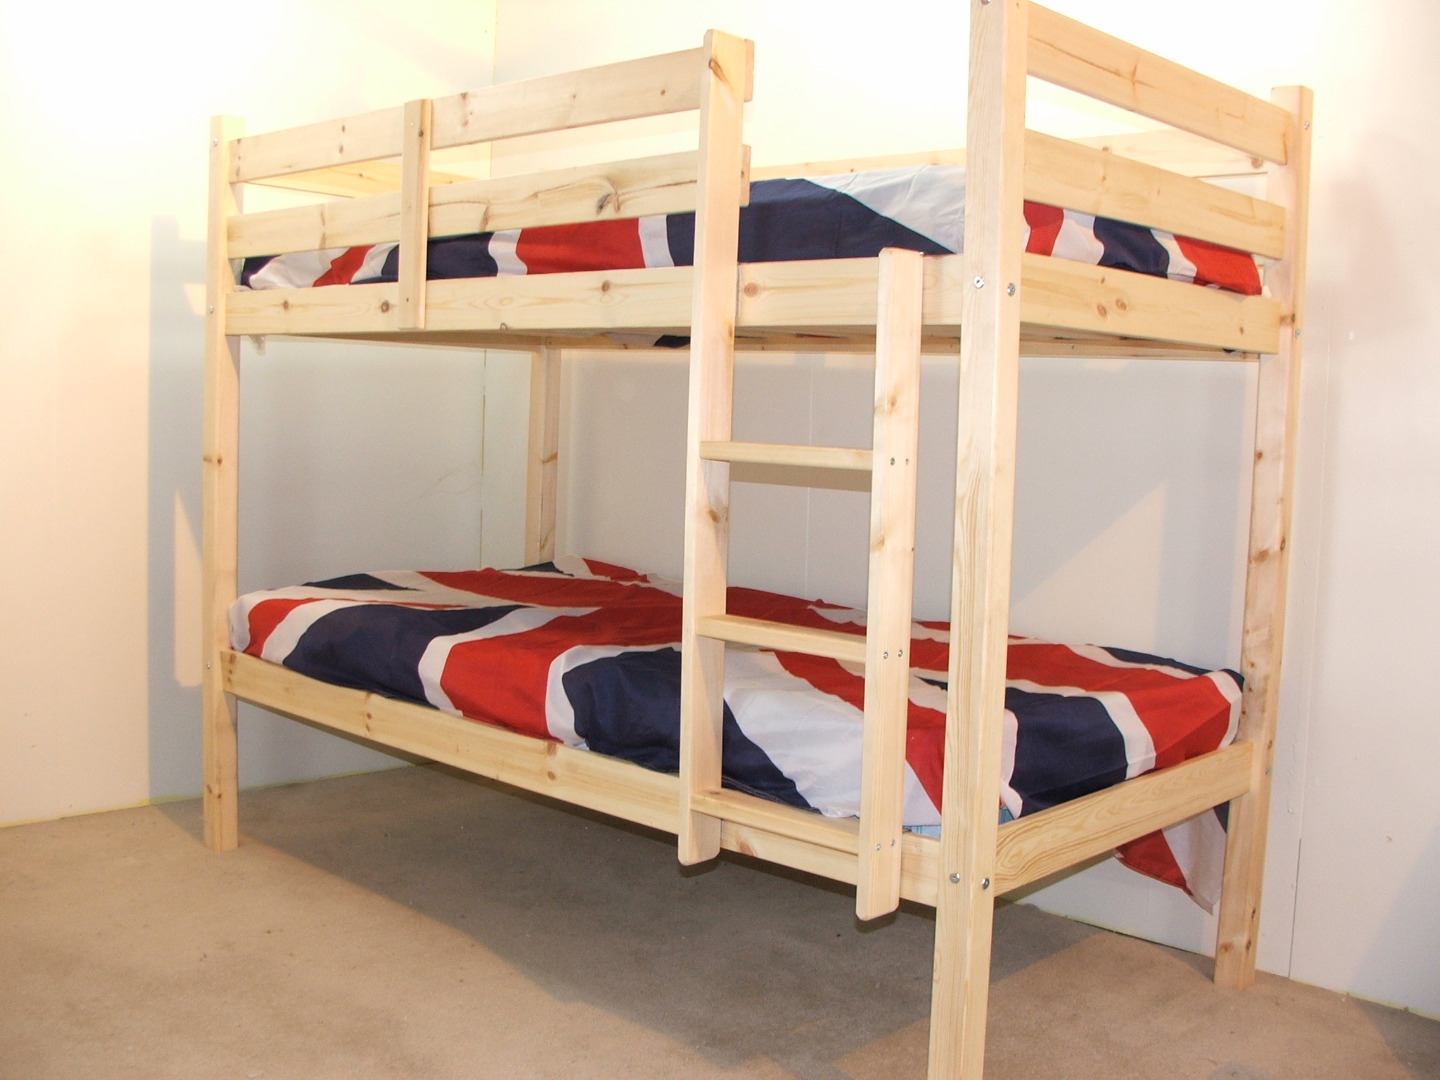 goliath 3ft single solid pine heavy duty low bunk bed. Black Bedroom Furniture Sets. Home Design Ideas